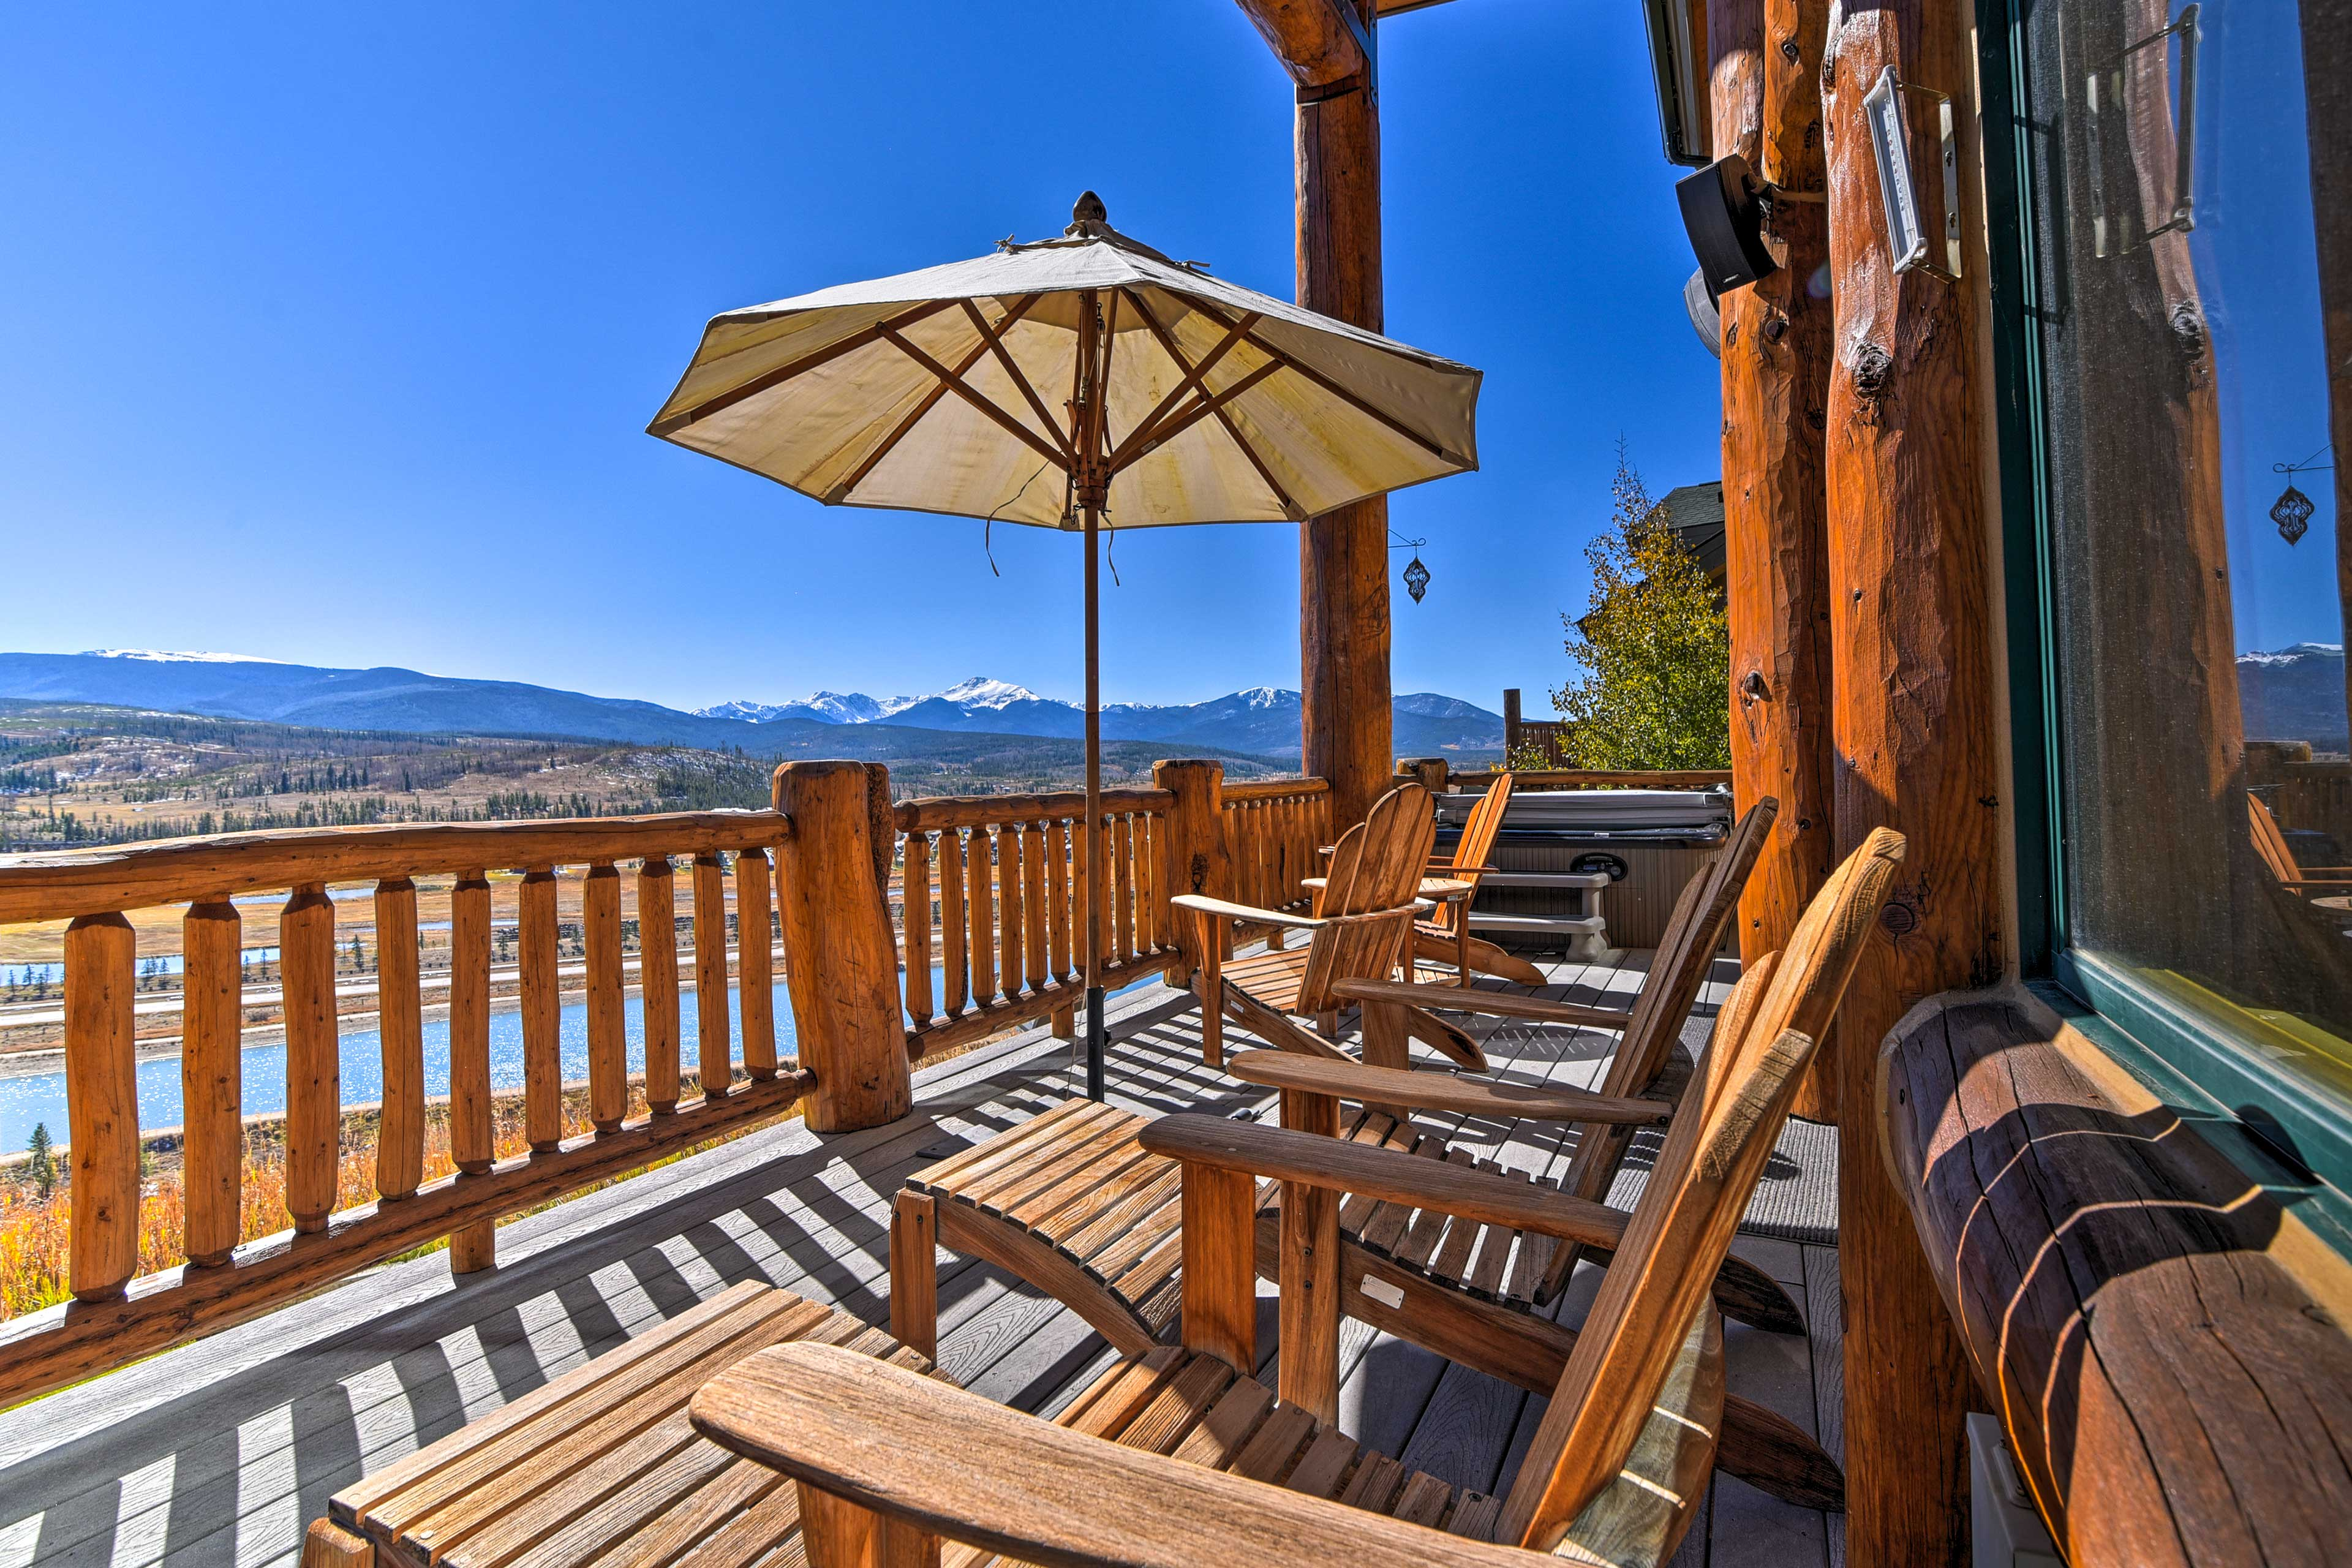 Gather on the deck to watch the sunset from the hot tub!